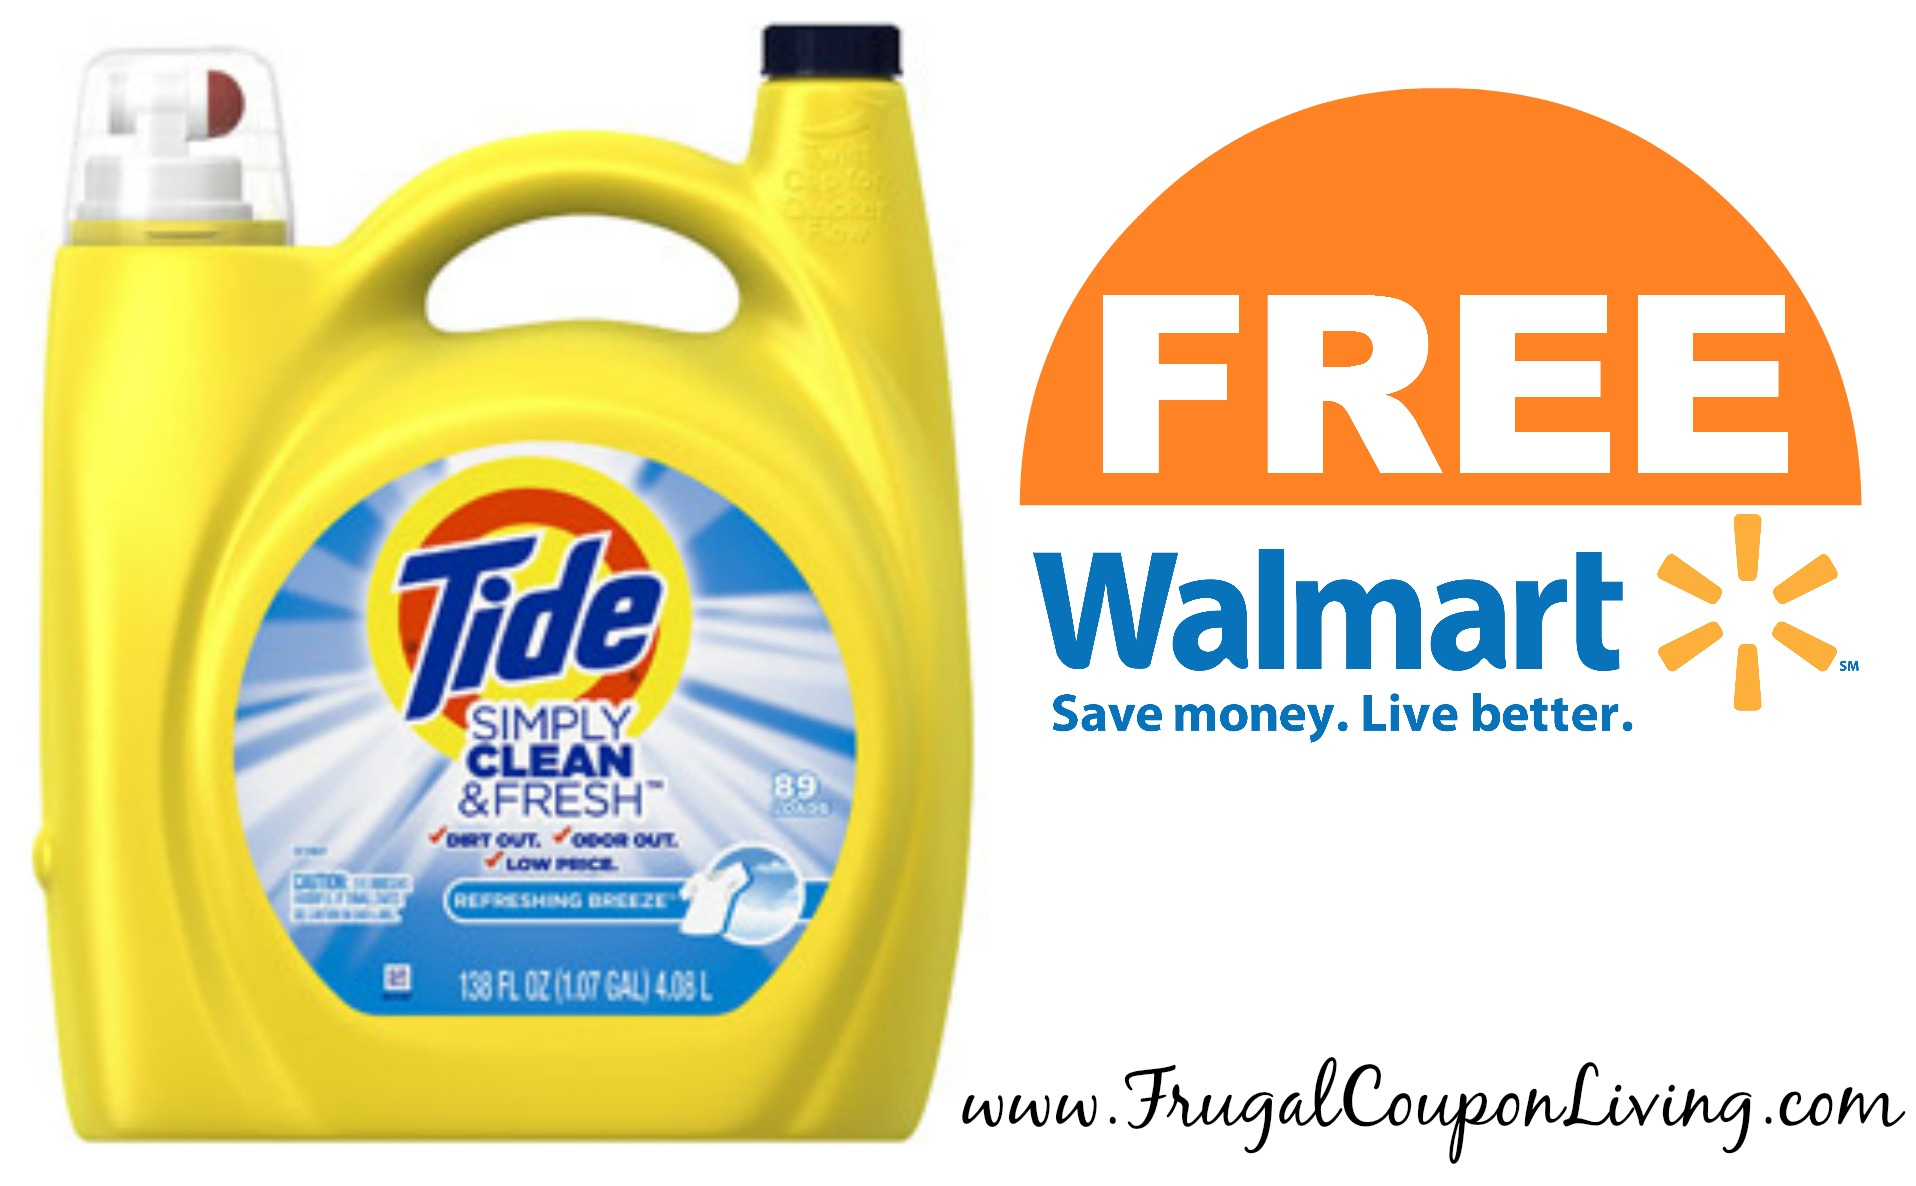 Tide Coupons Detergentdeal Starting At Each Laundry Room Wall Cabinets - Free All Detergent Printable Coupons